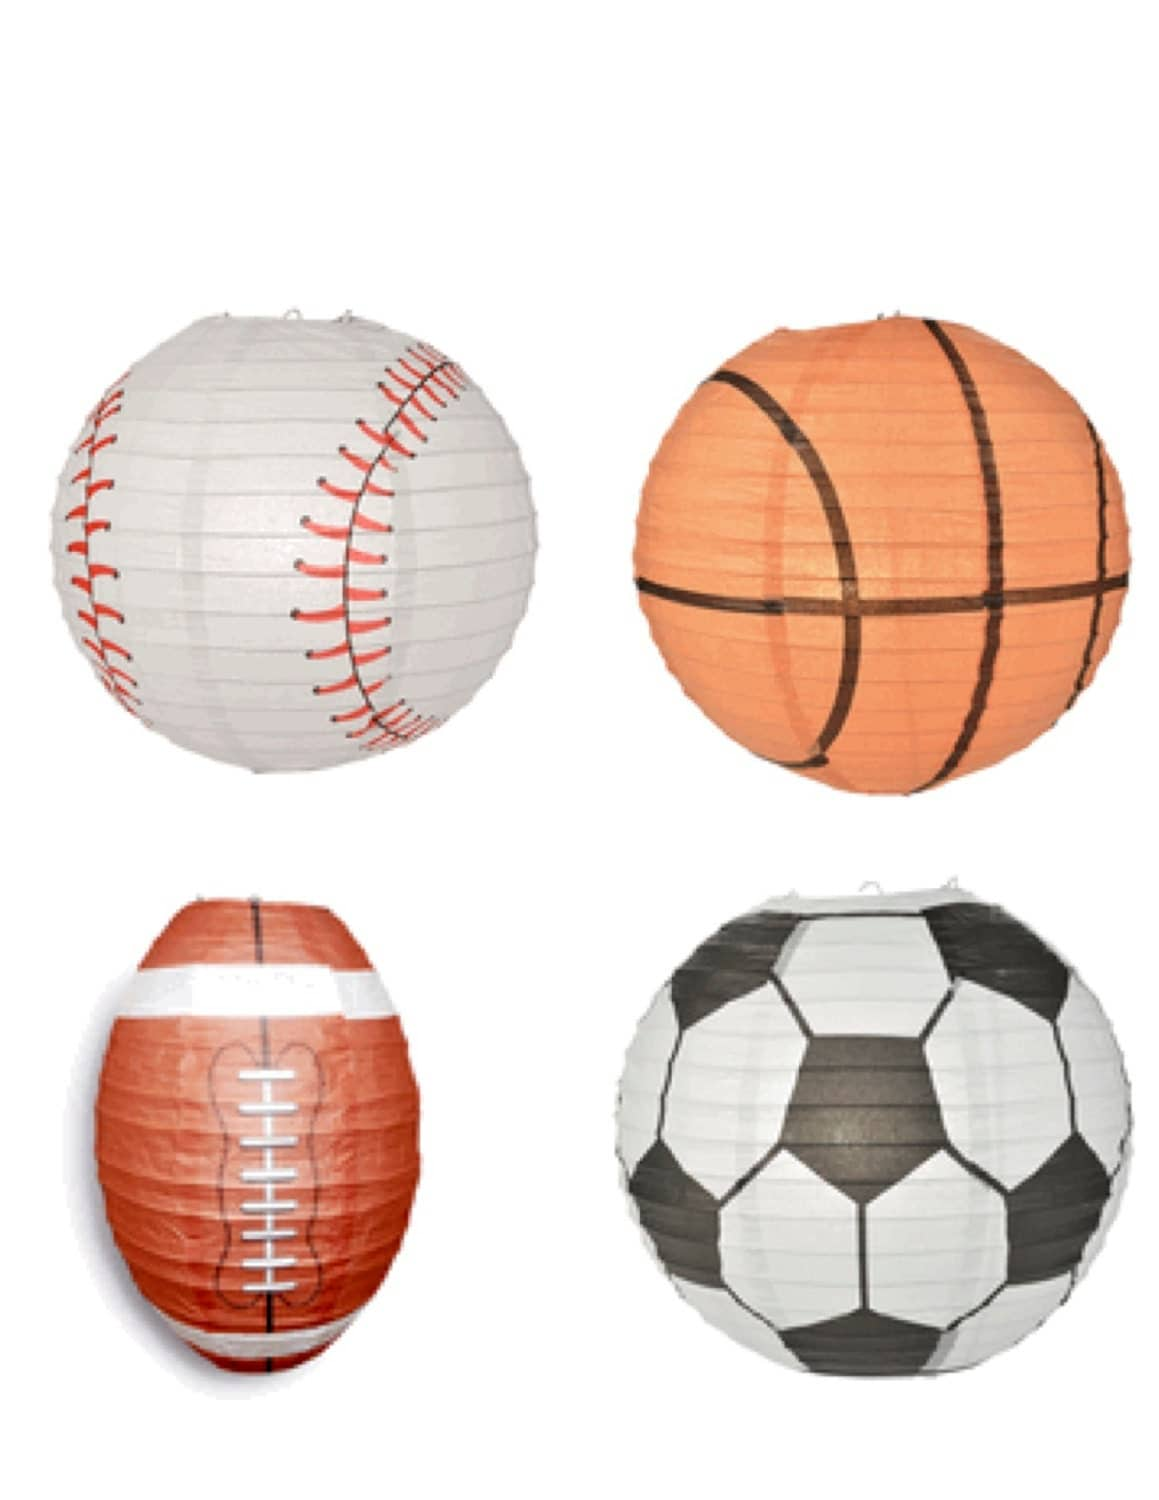 soccer vs baseball essays Football vs baseball essaysany good sport should be as much fun to watch as it is to play i cannot drag myself to watch a baseball game i love playing baseball or softball but four hours watching a pitcher shake off pitches to the catcher is unreal.